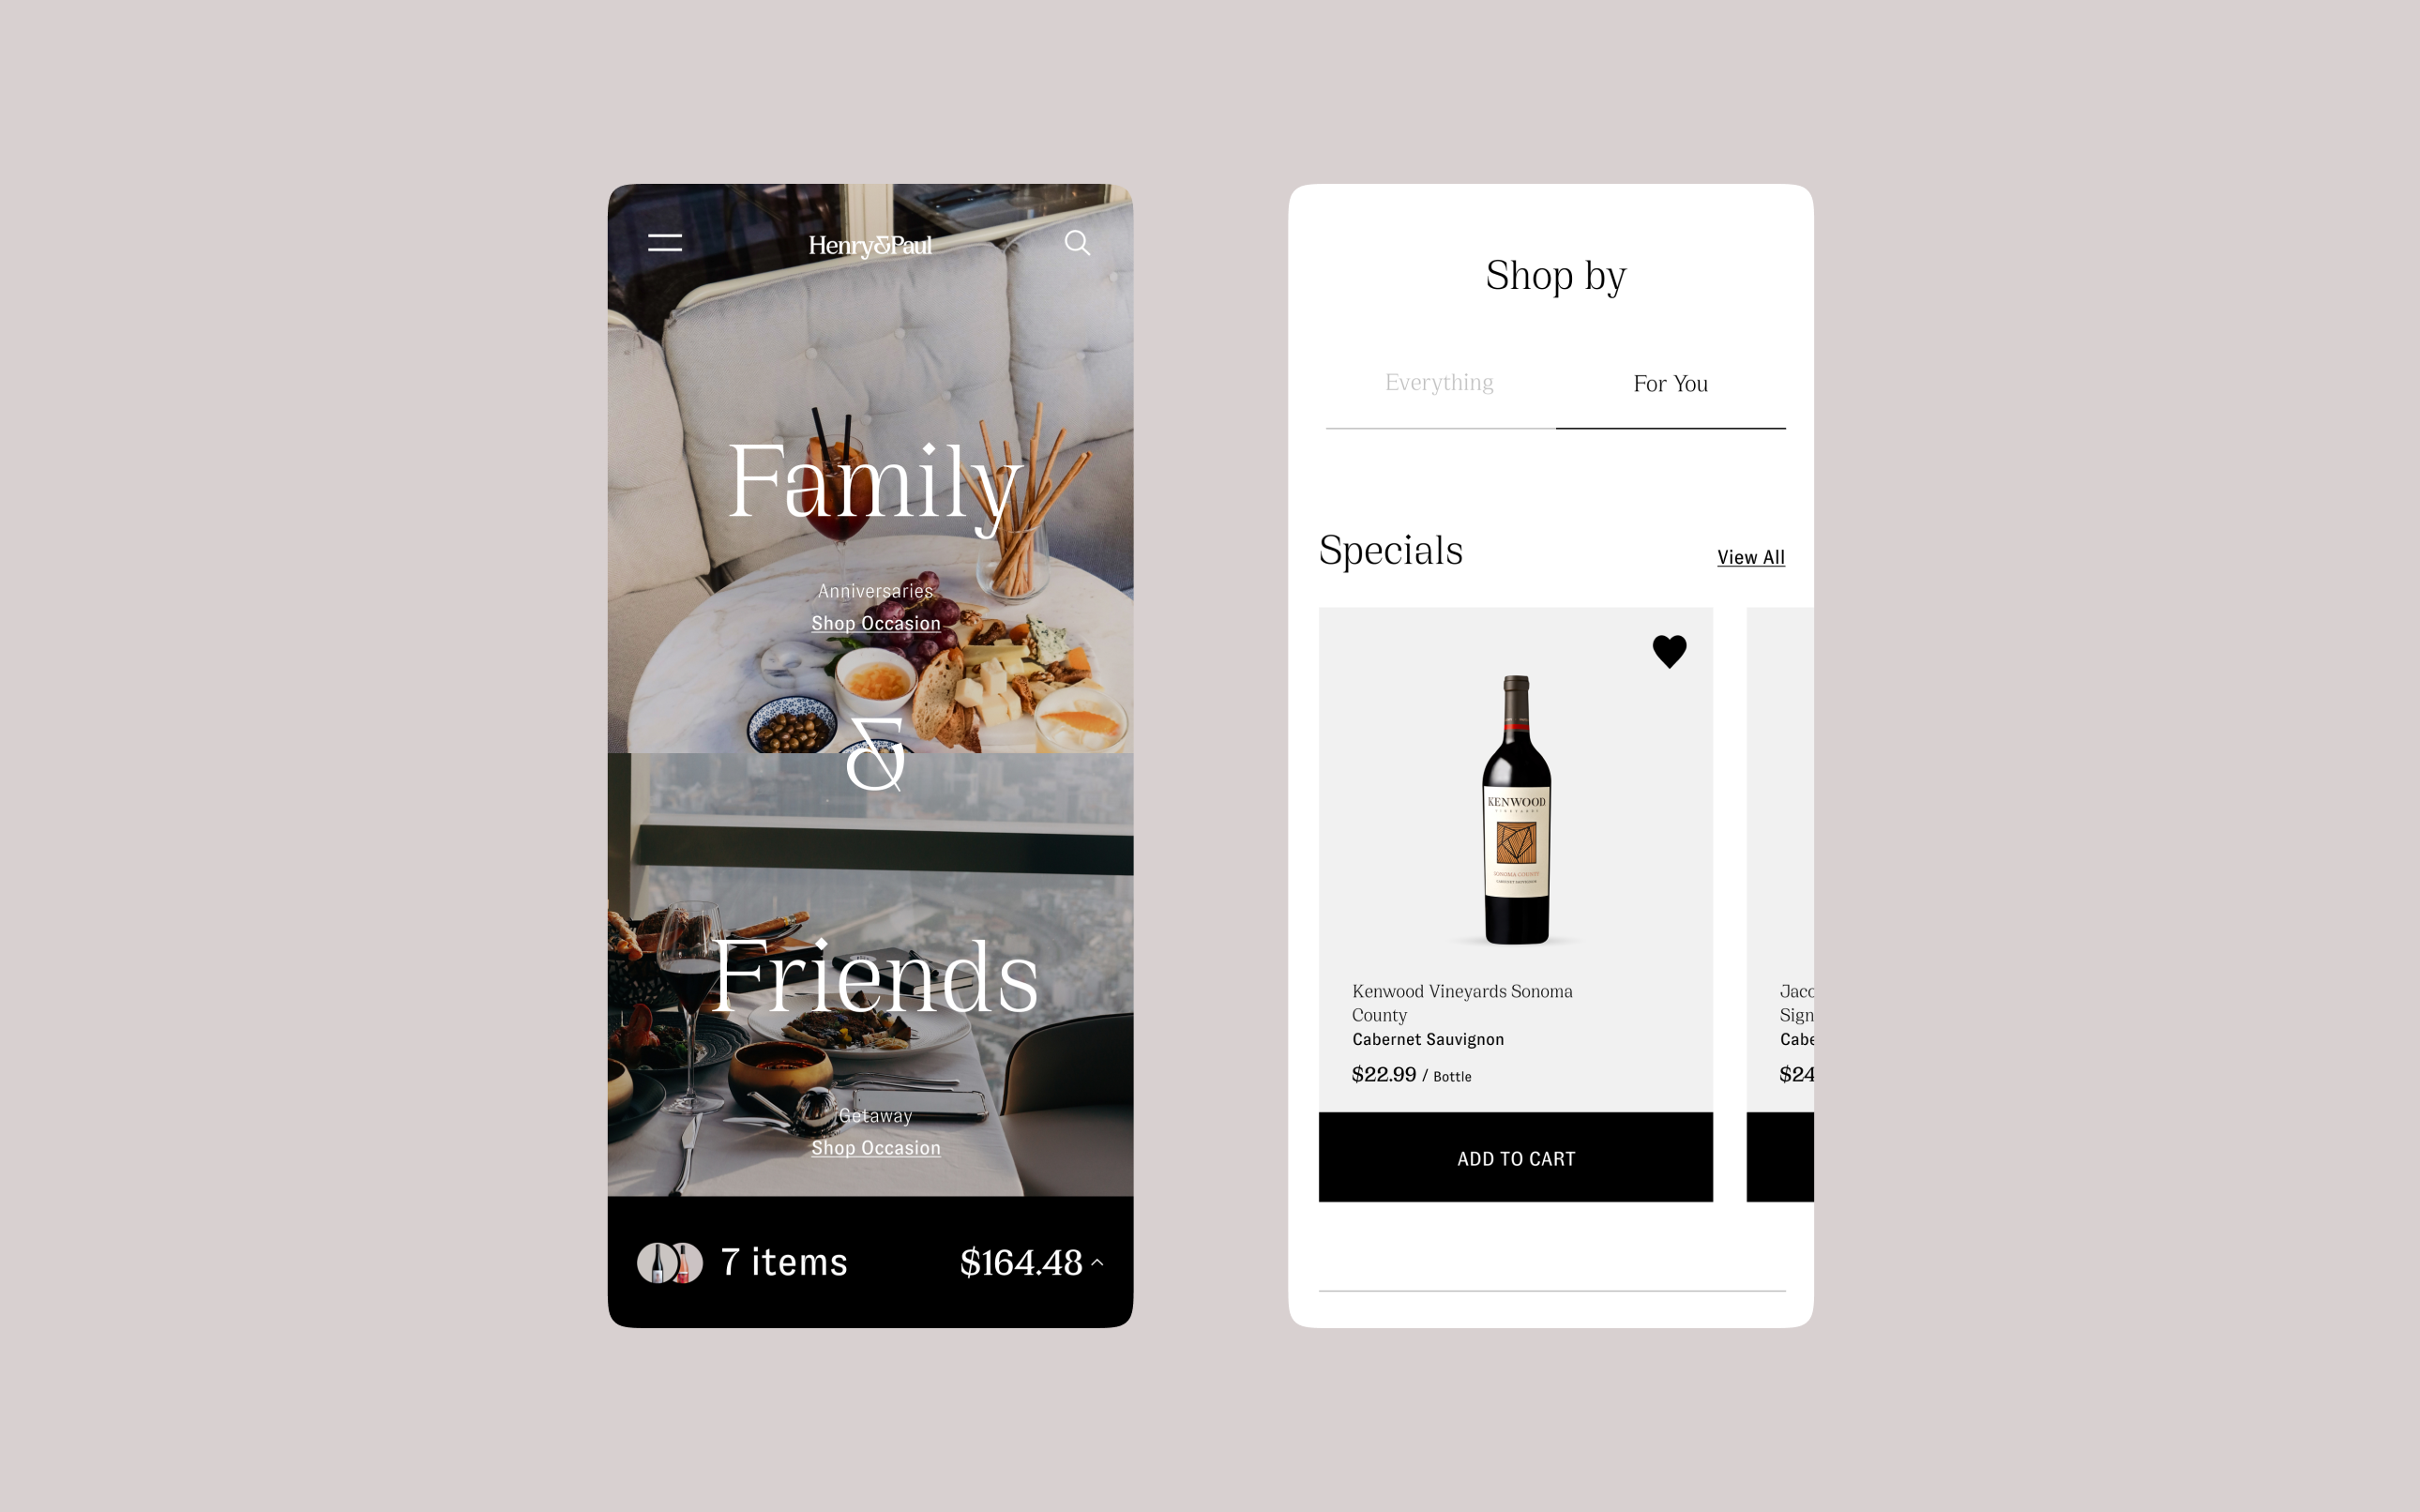 Henry & Paul website mobile screenshots, showcasing the homepage and product cards